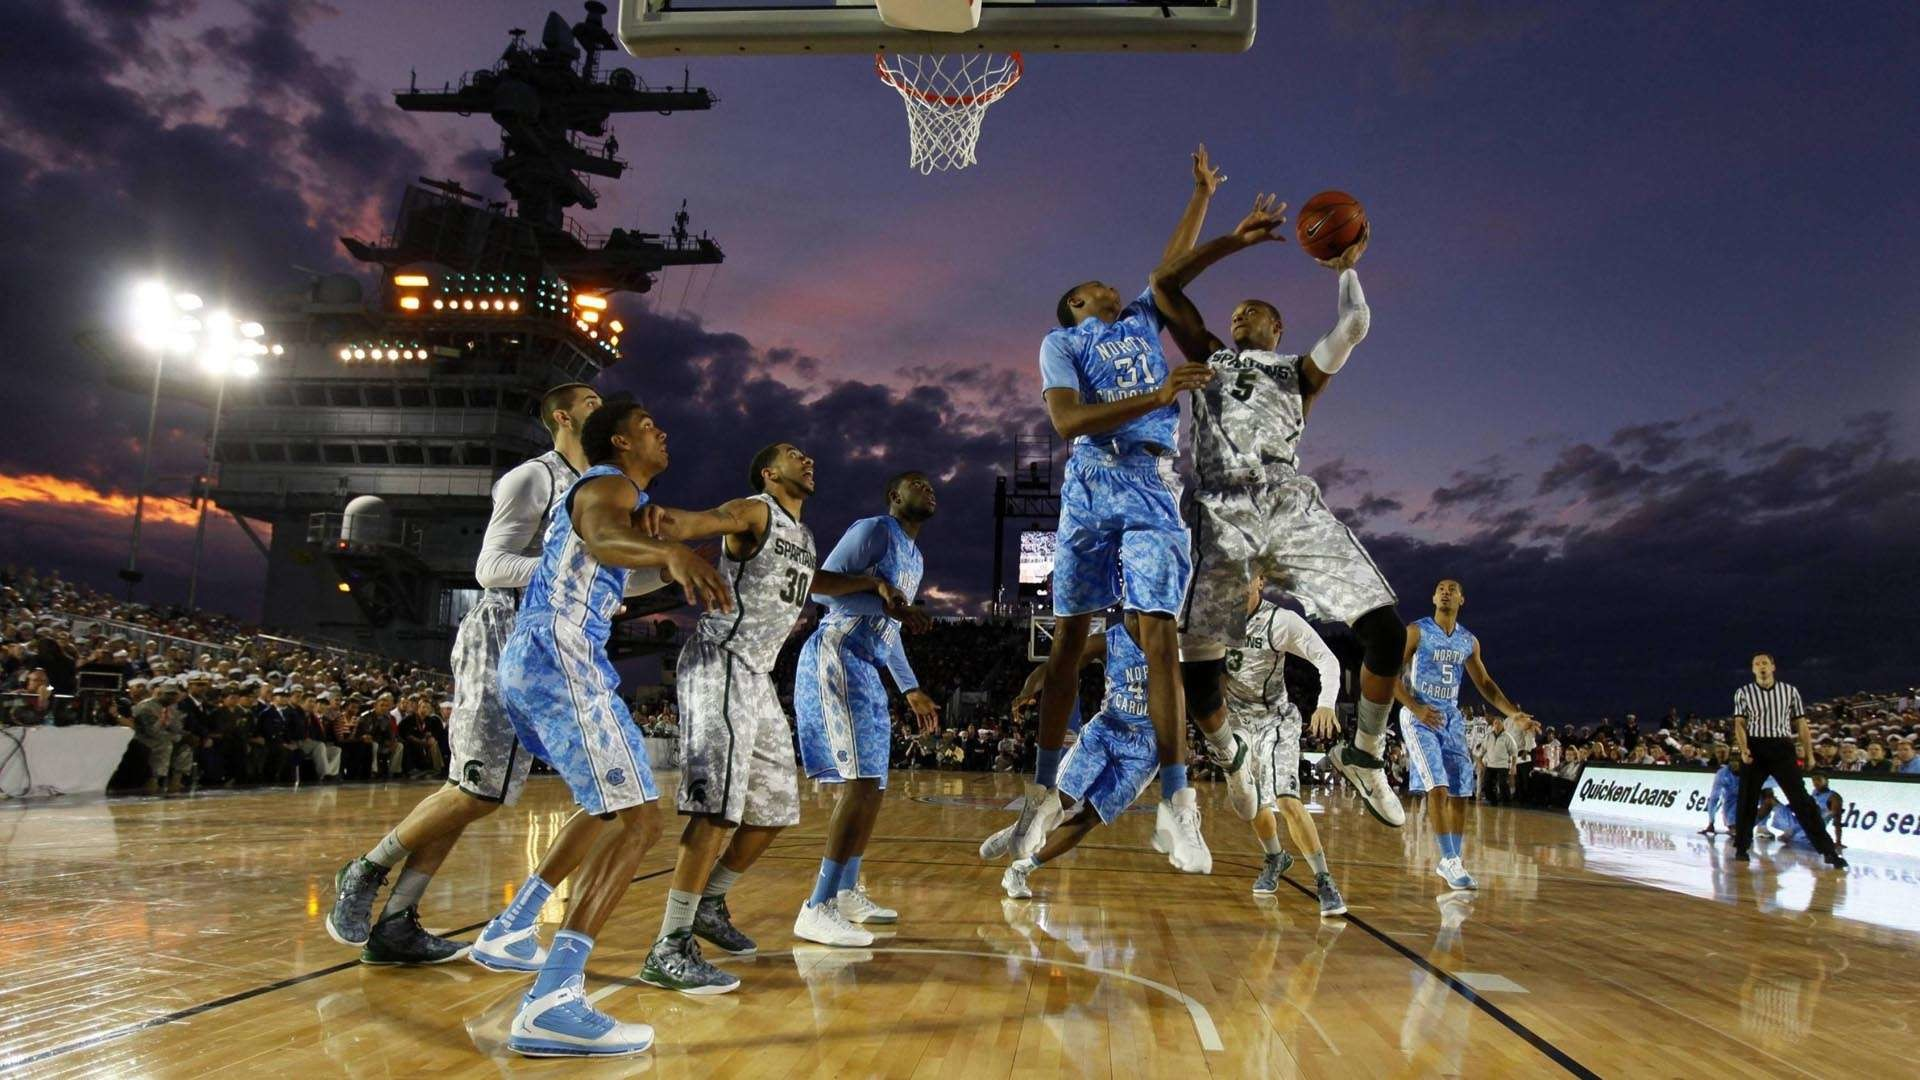 Res: 1920x1080, College basketball game on an aircraft carrier HD Wallpaper .